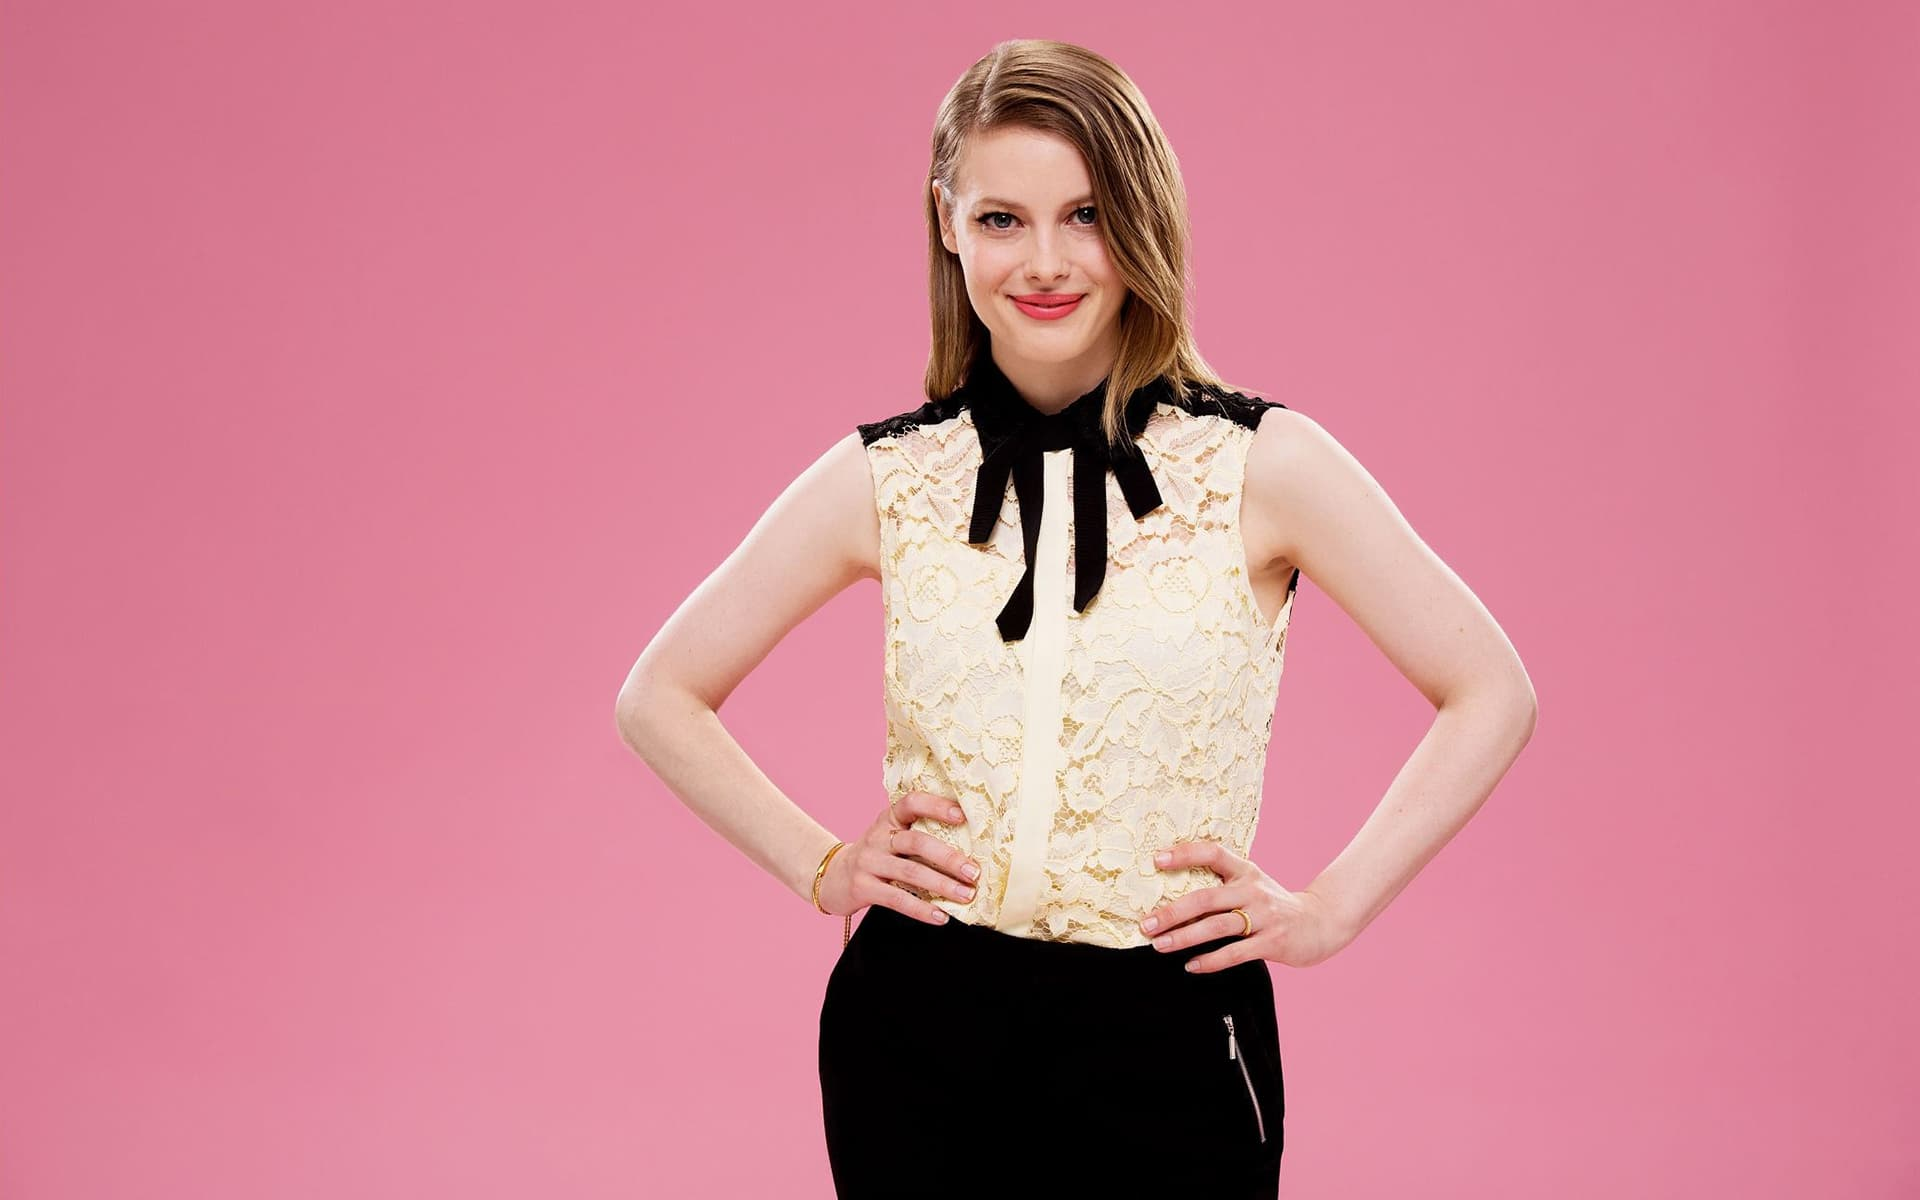 Gillian Jacobs pink background HD image